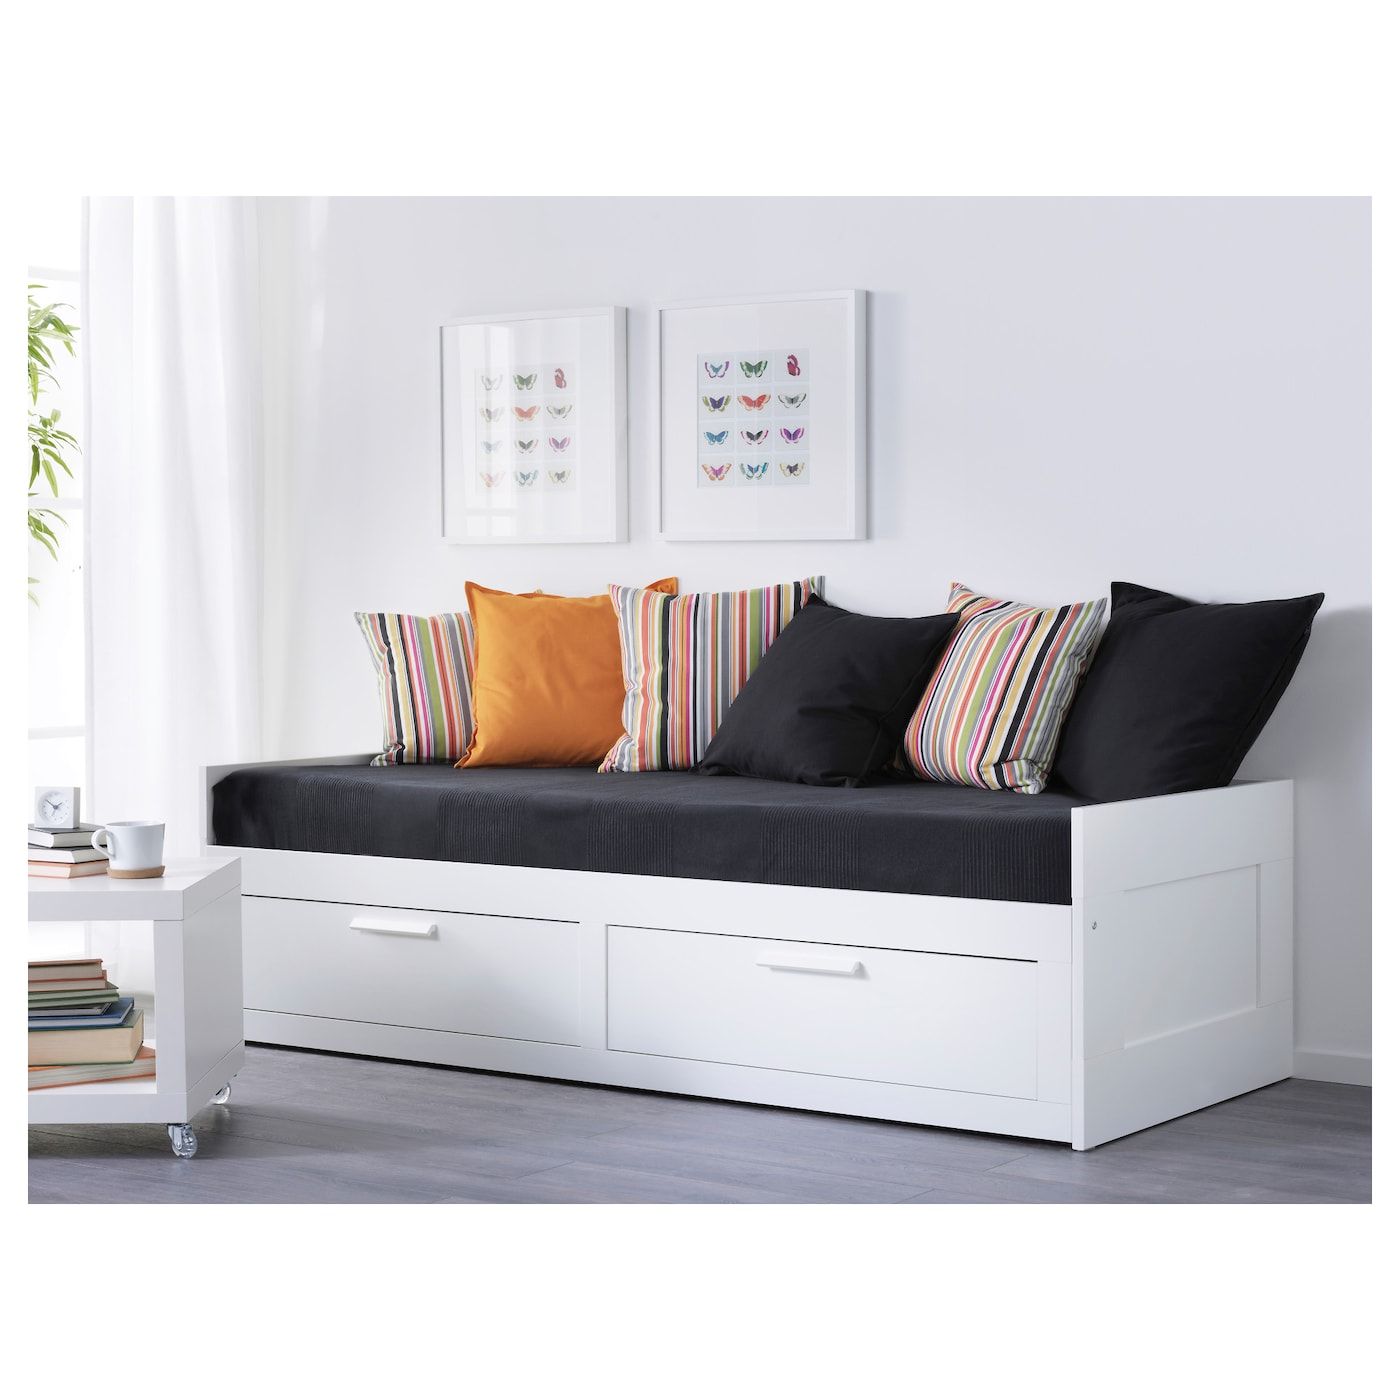 Brimnes day bed w 2 drawers 2 mattresses white moshult - Letto ikea brimnes ...